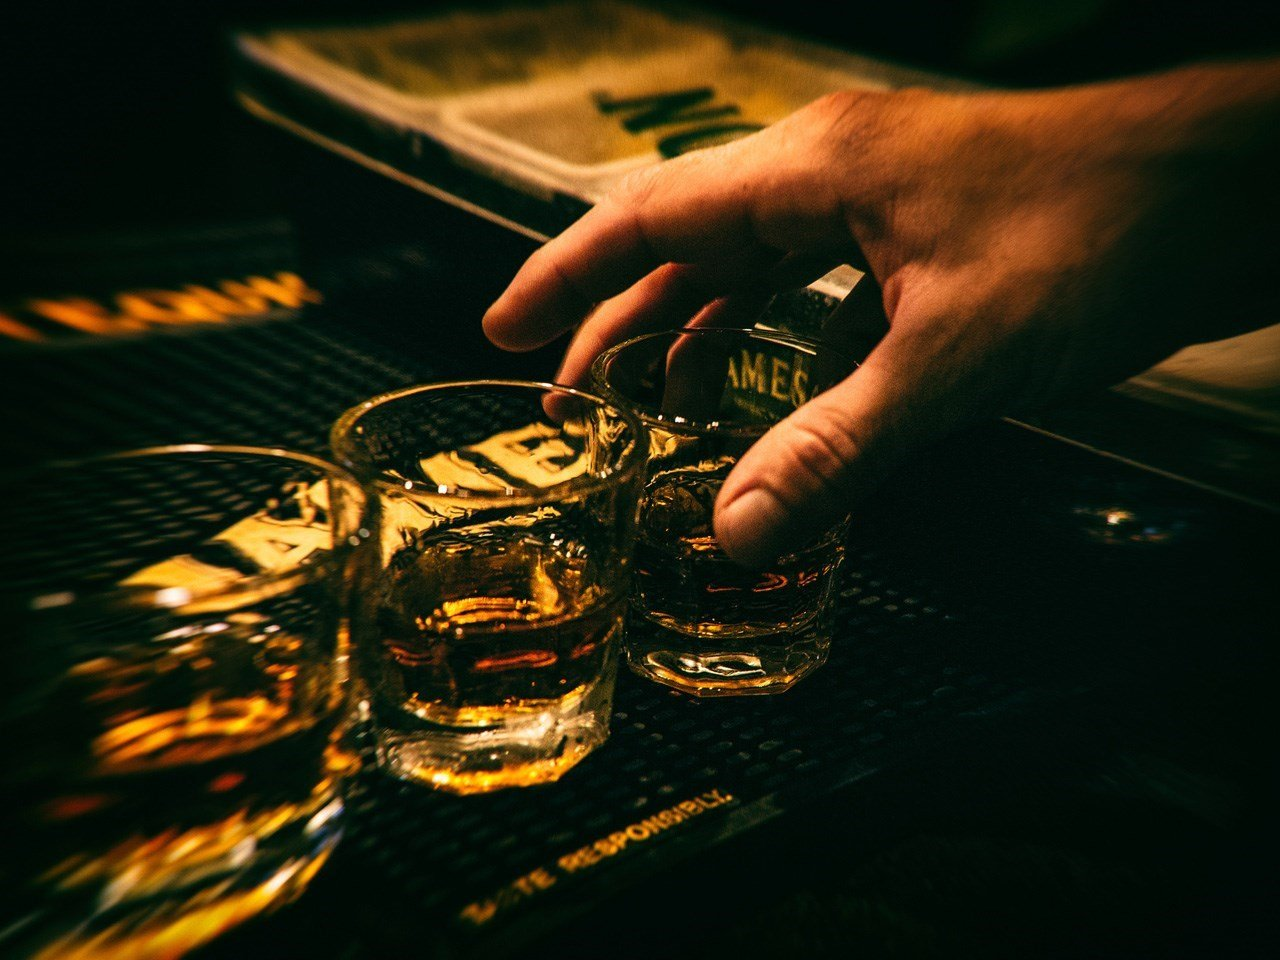 Calls for a review of safe alcohol consumption guidelines